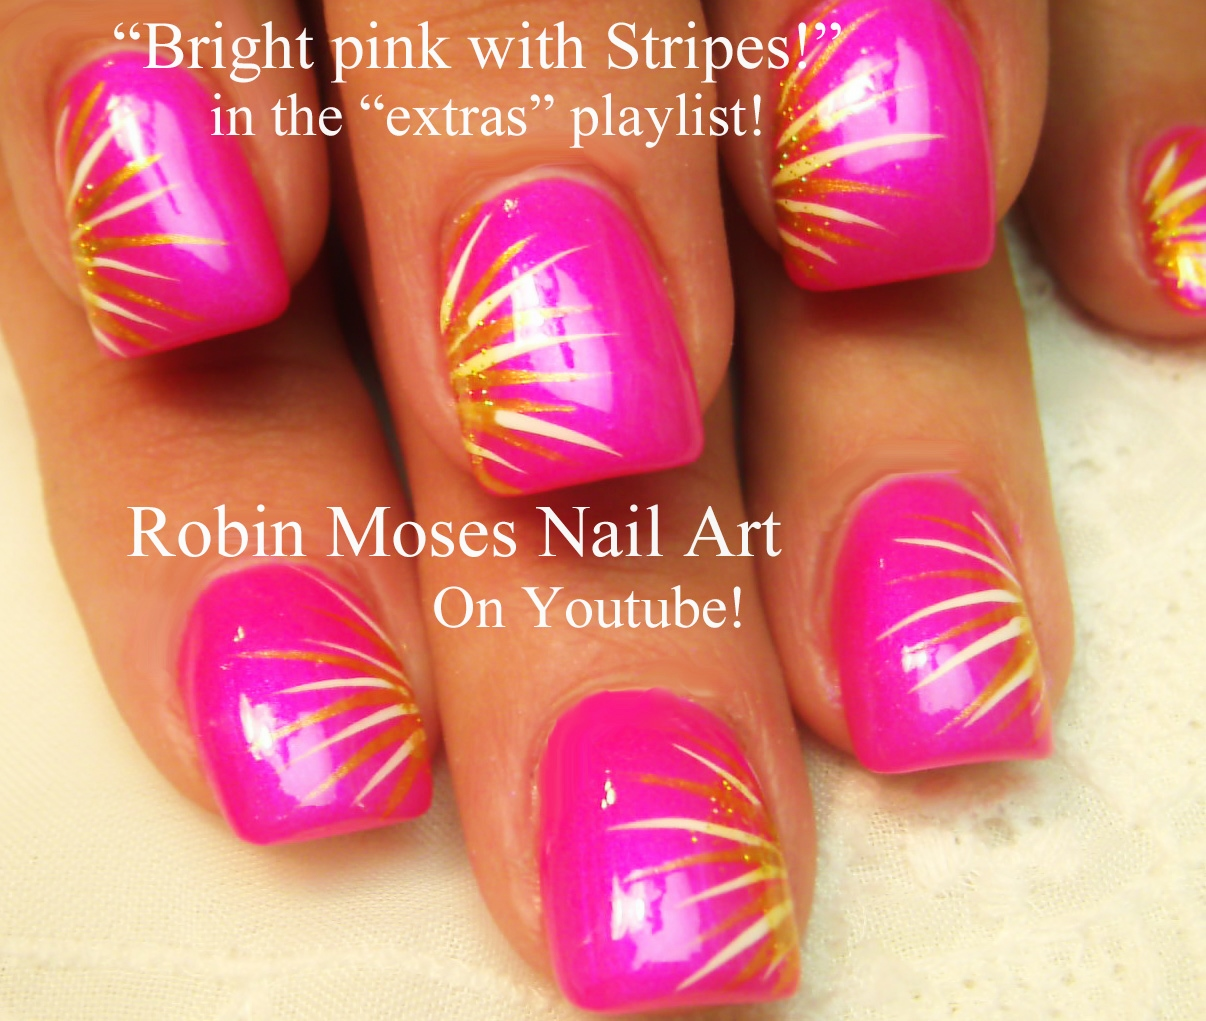 Robin moses nail art summer color fun neon pink and yellow ombre nail art tutorial diy white hibiscus nails neon pink ombre nail design prinsesfo Image collections